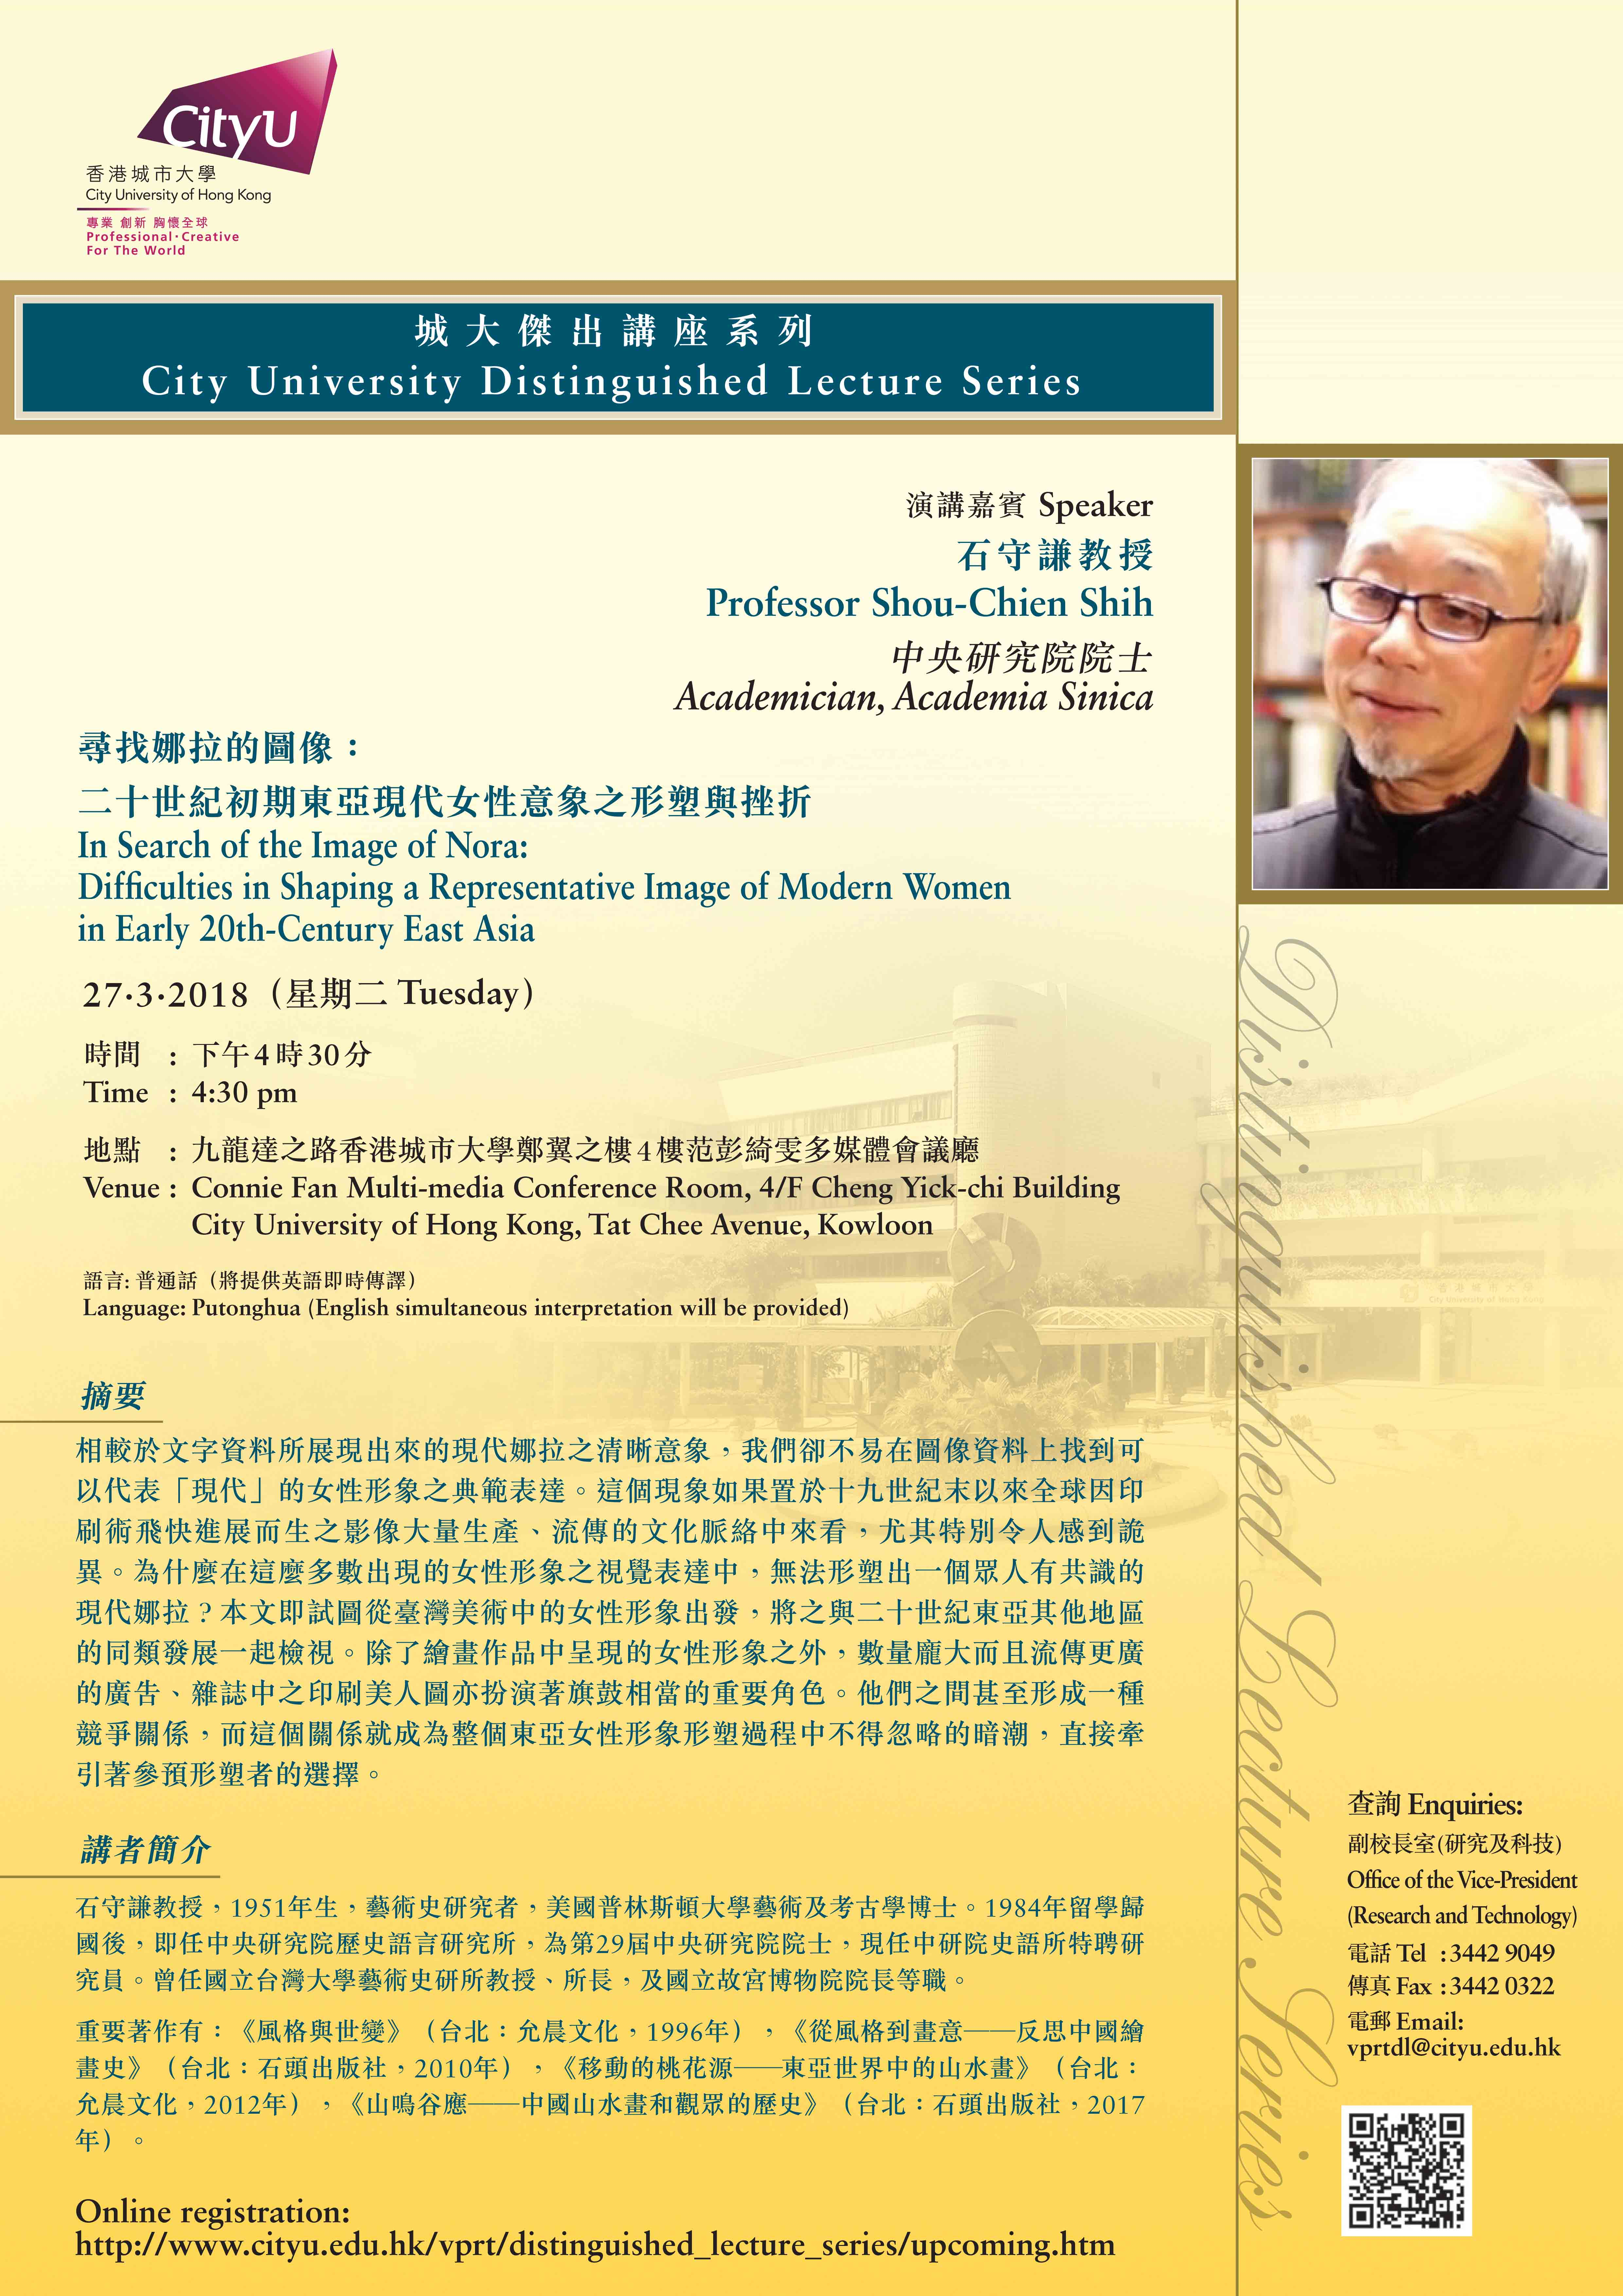 """CityU Distinguished Lecture """"In Search of the Image of Nora: Difficulties in Shaping a Representative Image of Modern Women in Early 20th-Century East Asia"""" (27 March 2018)"""